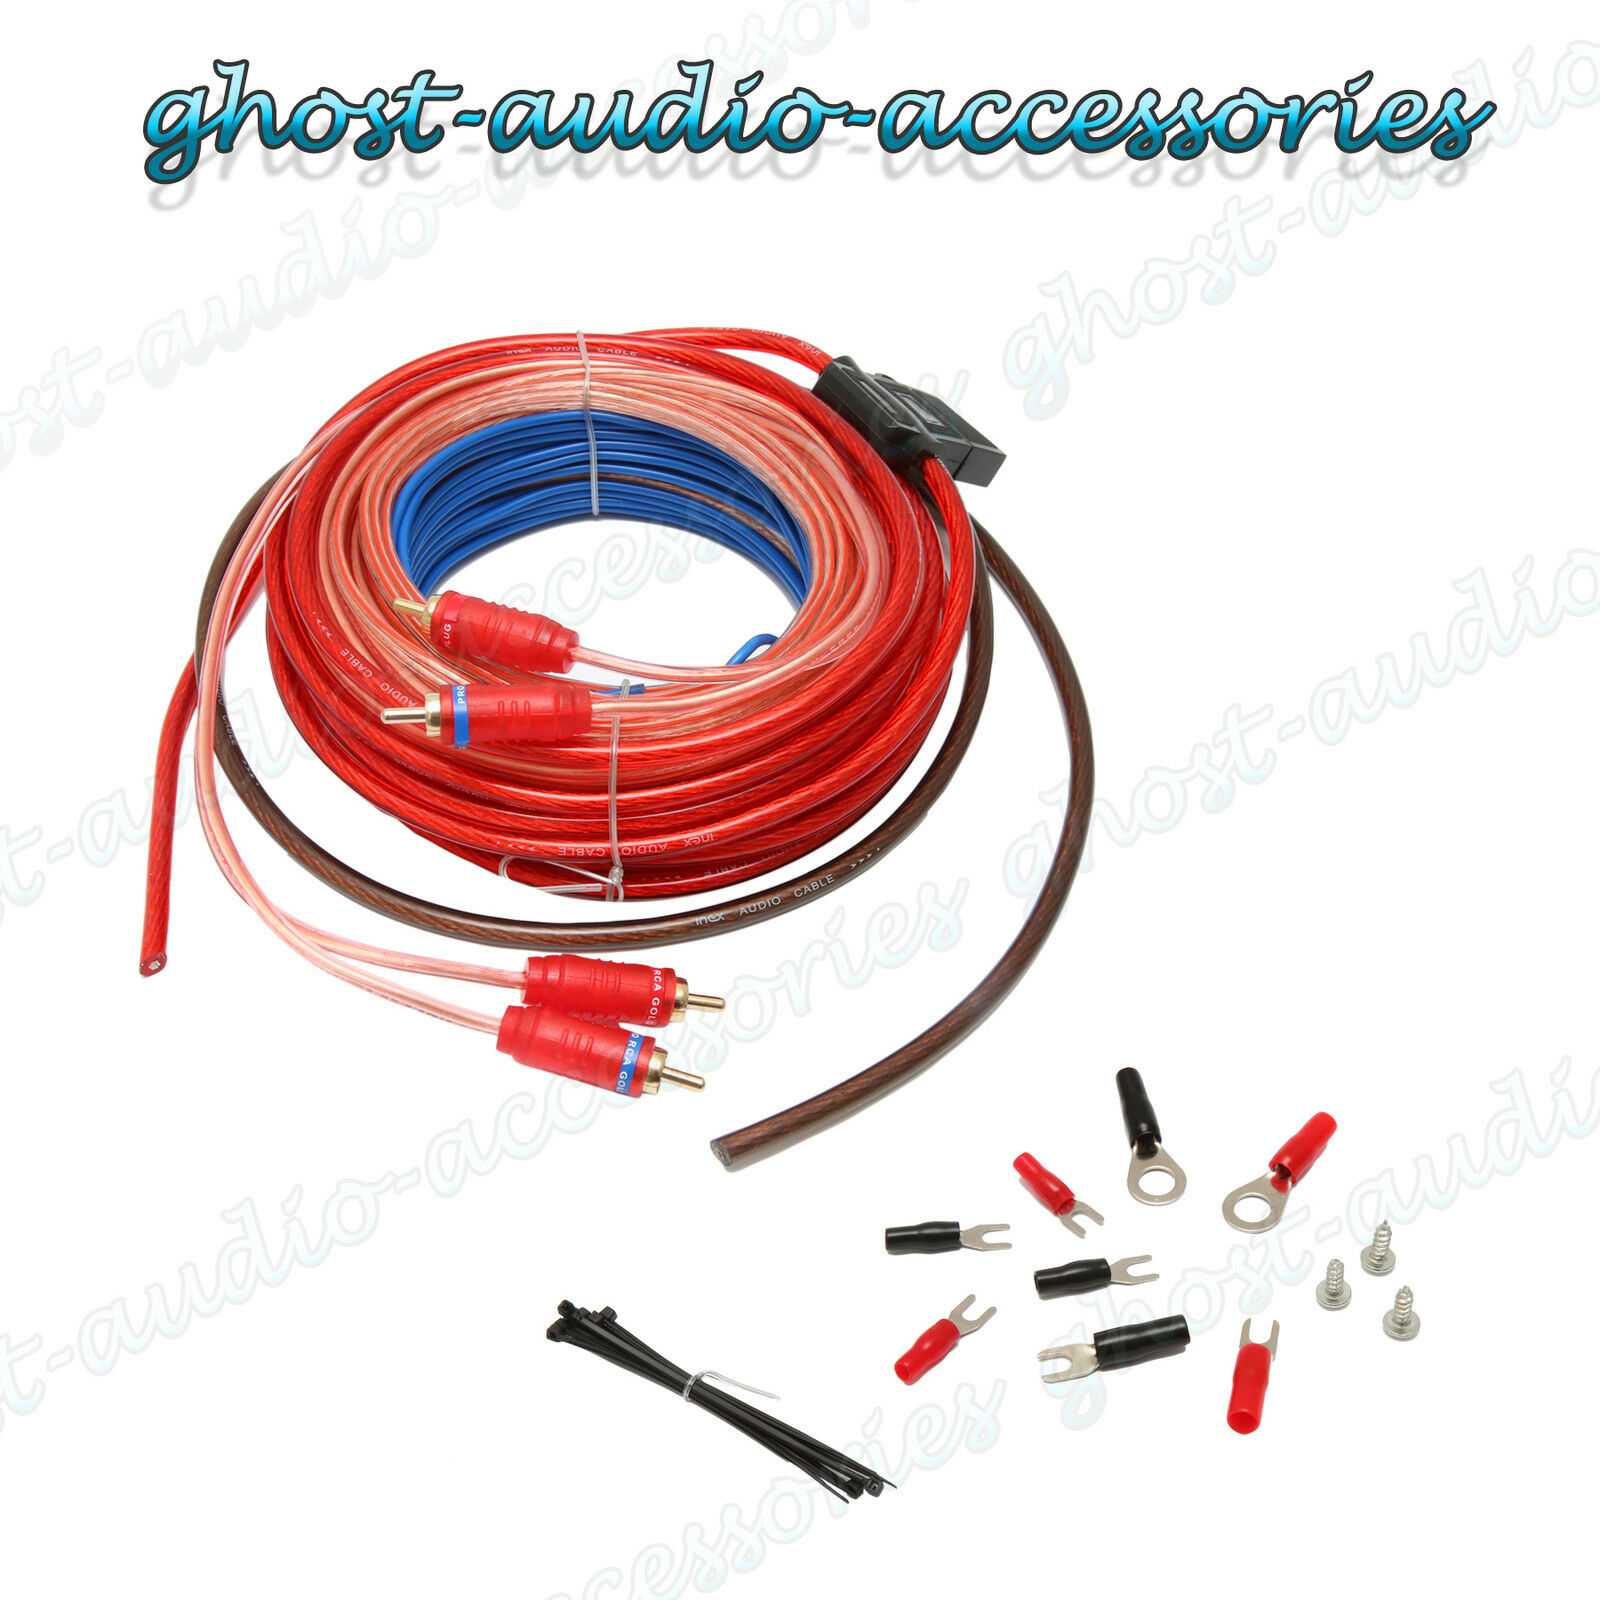 10 Awg Gauge Amplifier Amp Wiring Kit For Edge Vibe Car Audio Complete Wire Install 4g Ebay Subwoofer 1 Of 1free Shipping